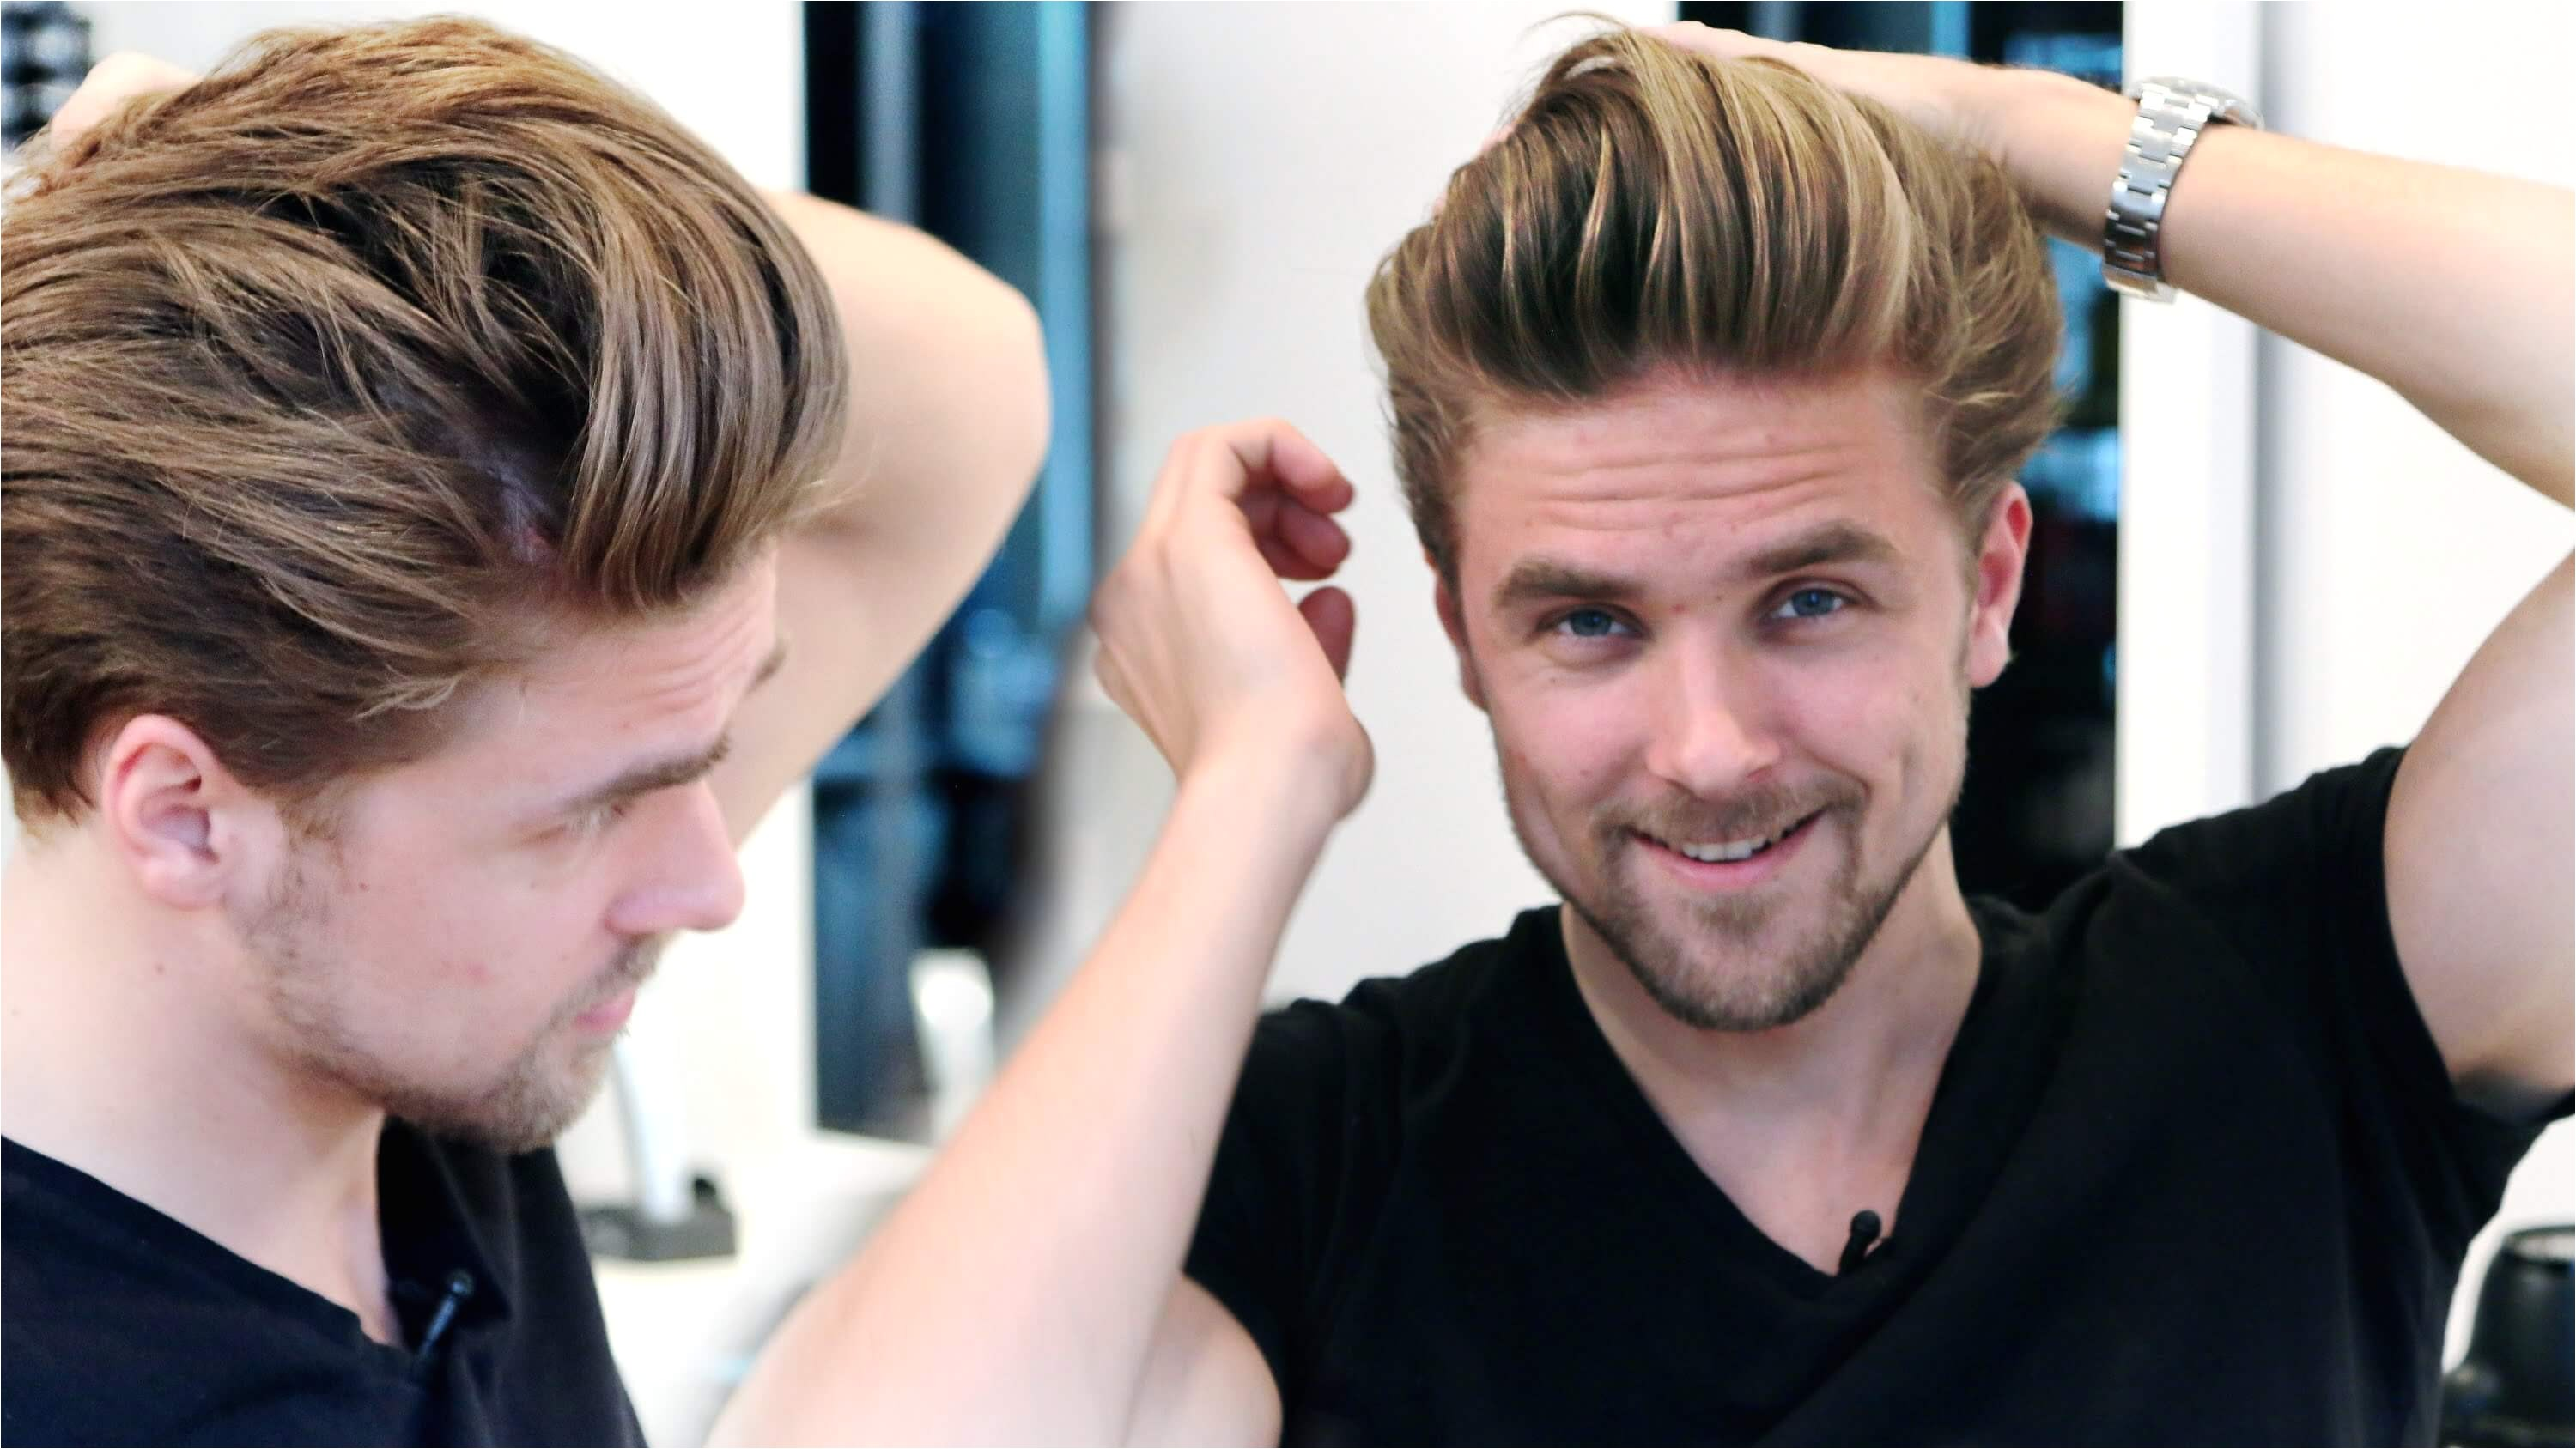 top 5 hairstyling tips men